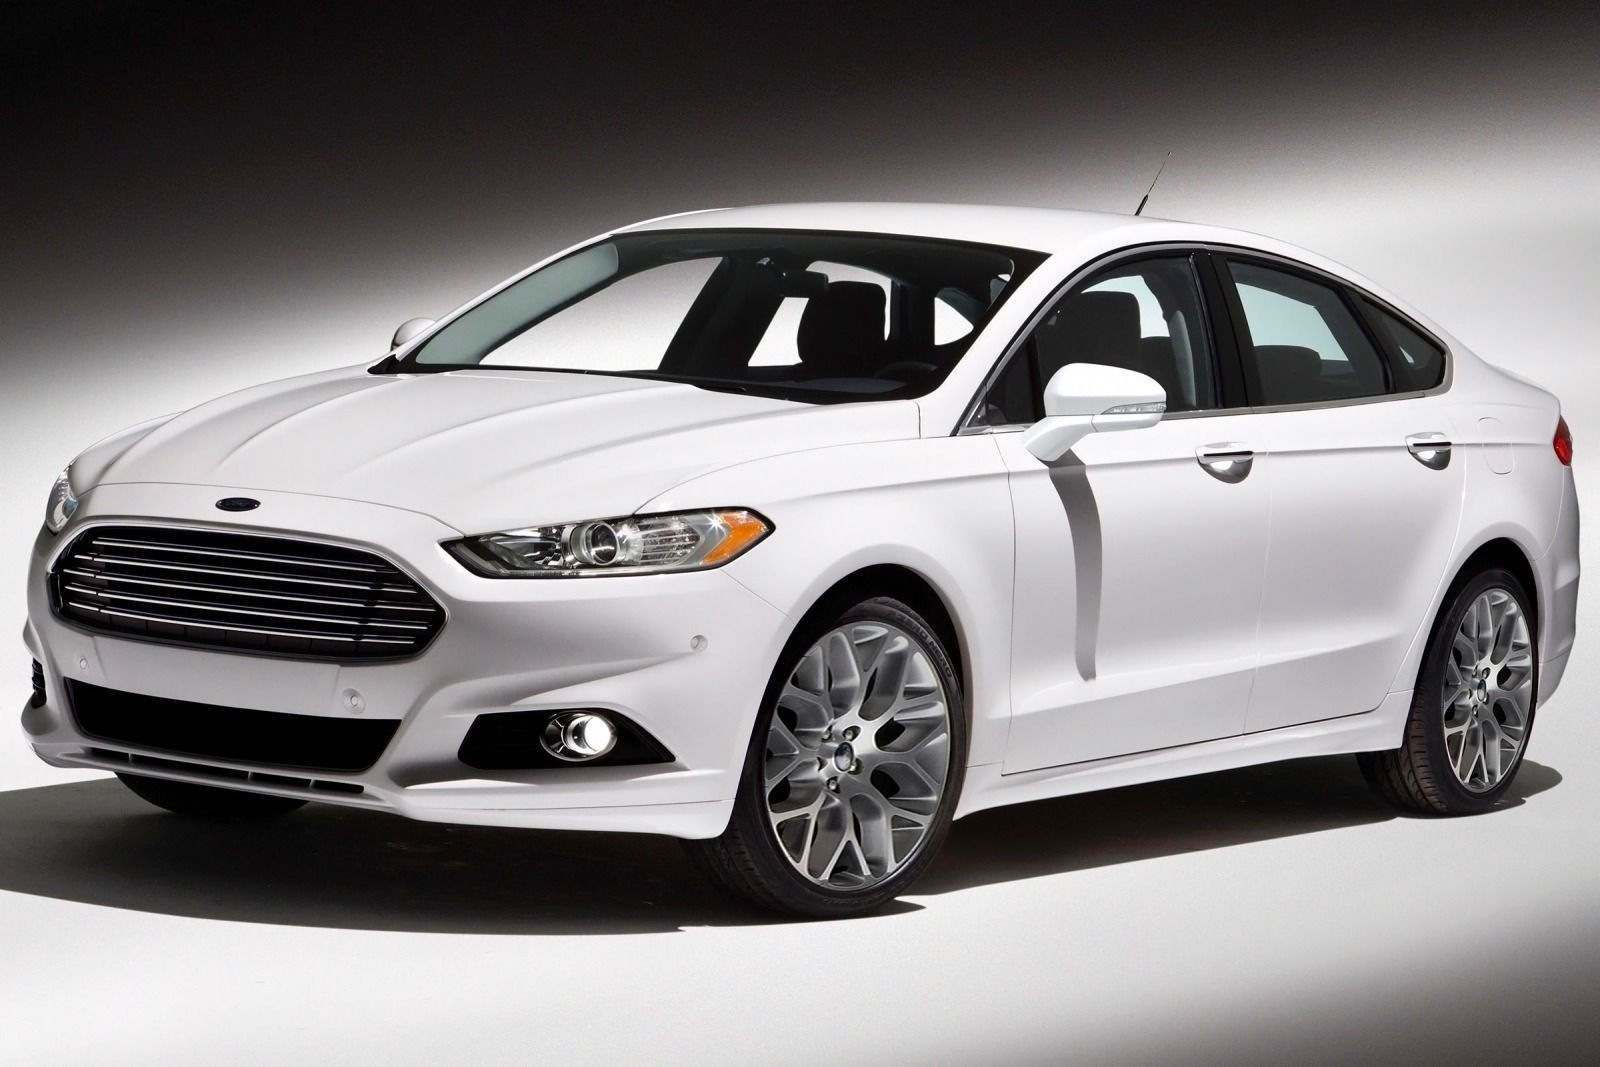 Best Selection Of Pictures For Car 2016 Ford Sedan On All The Internet Enjoy High Quality Gallery Cars And Tell Your Friends In Social Networks